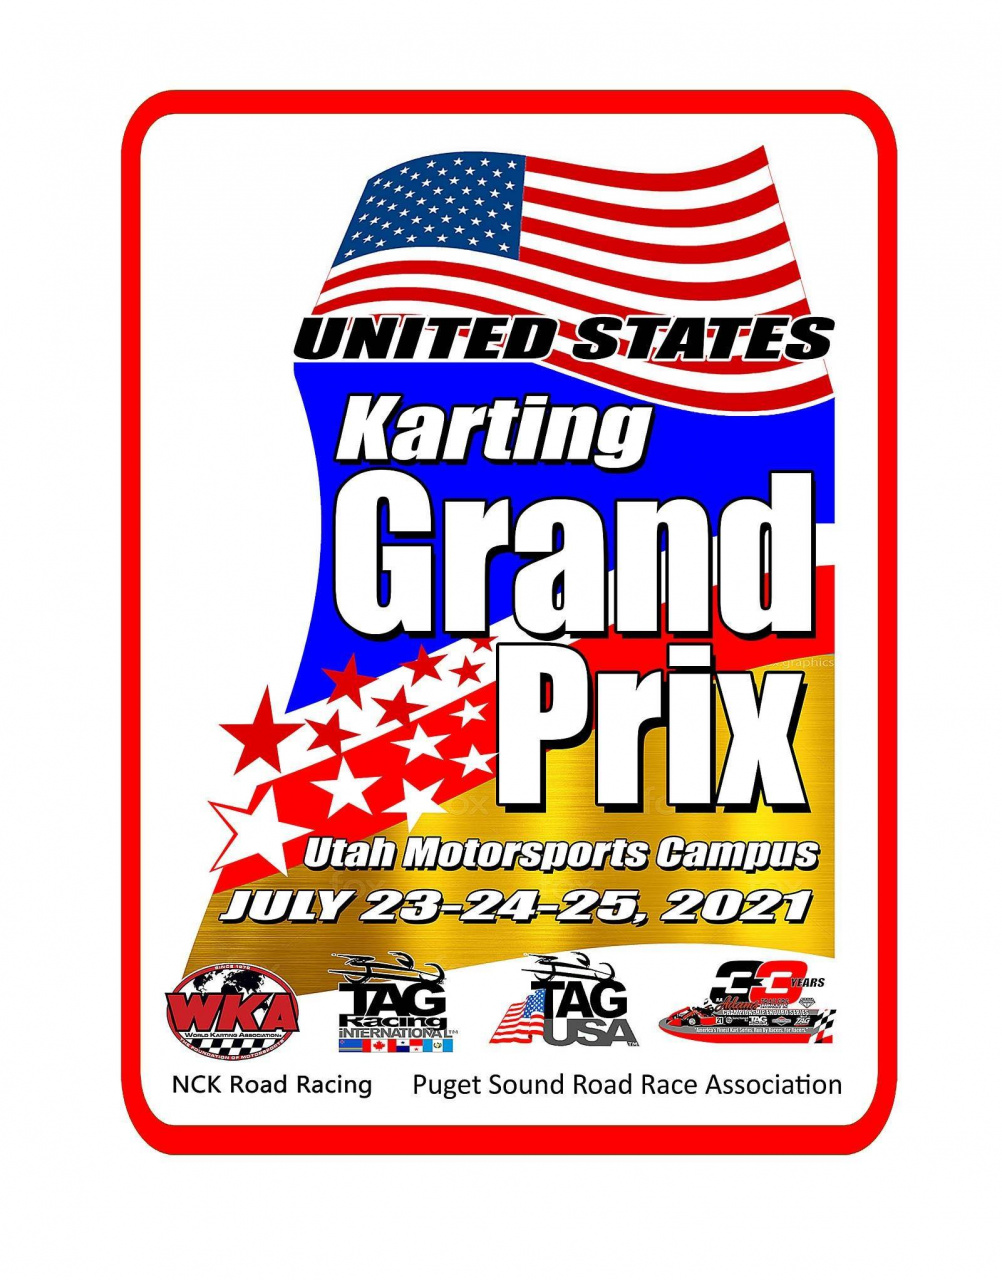 United States Karting Grand Prix Changes Event Structure